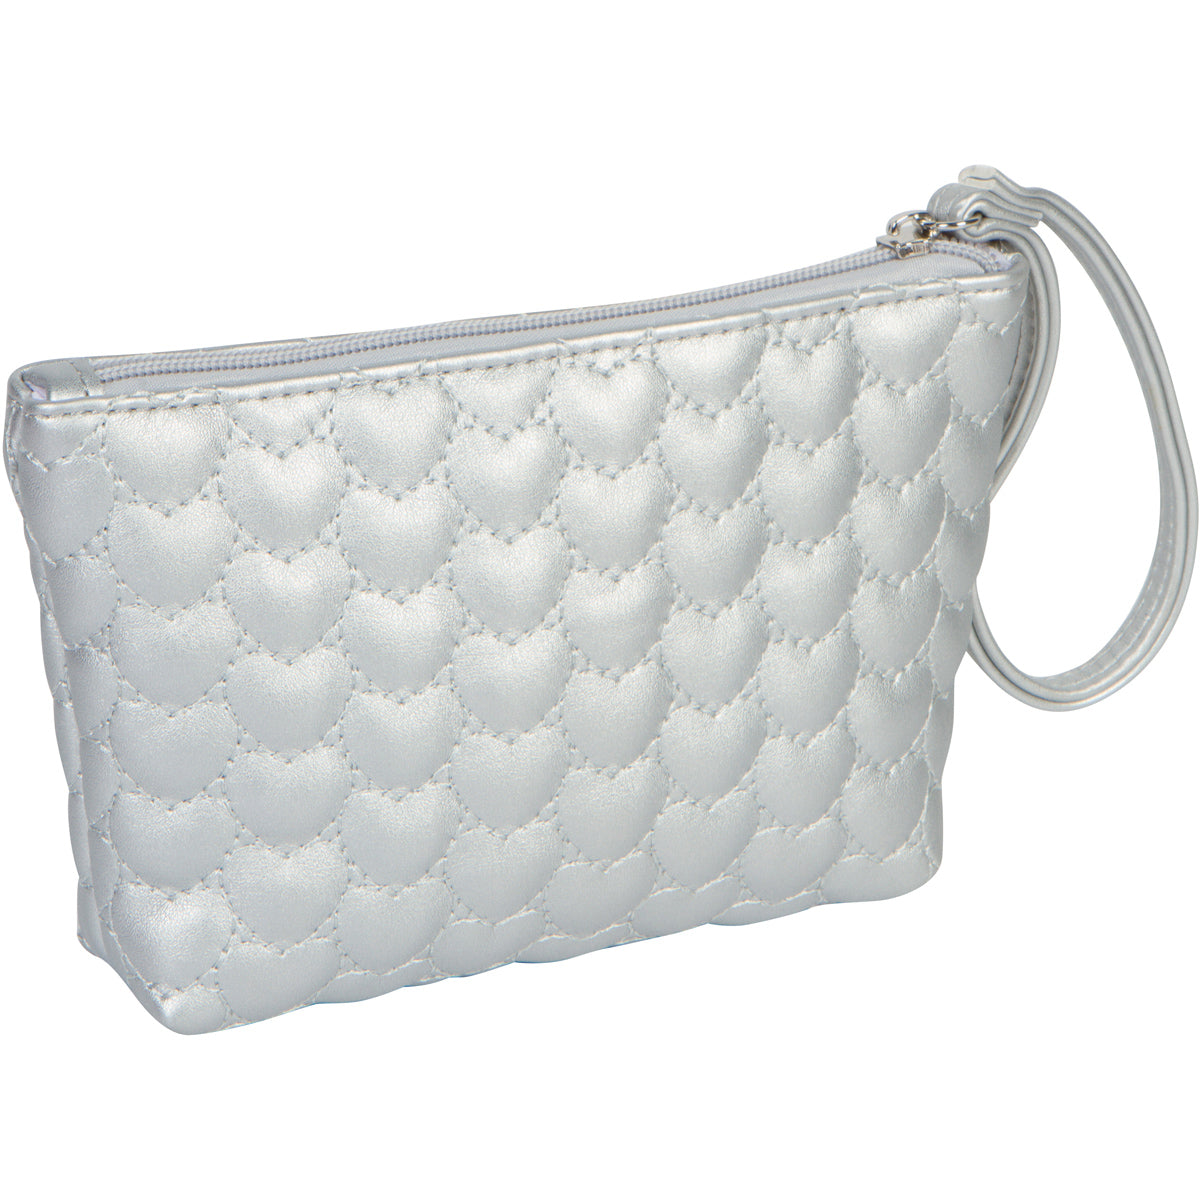 Silver Love Series Heart Makeup Bag